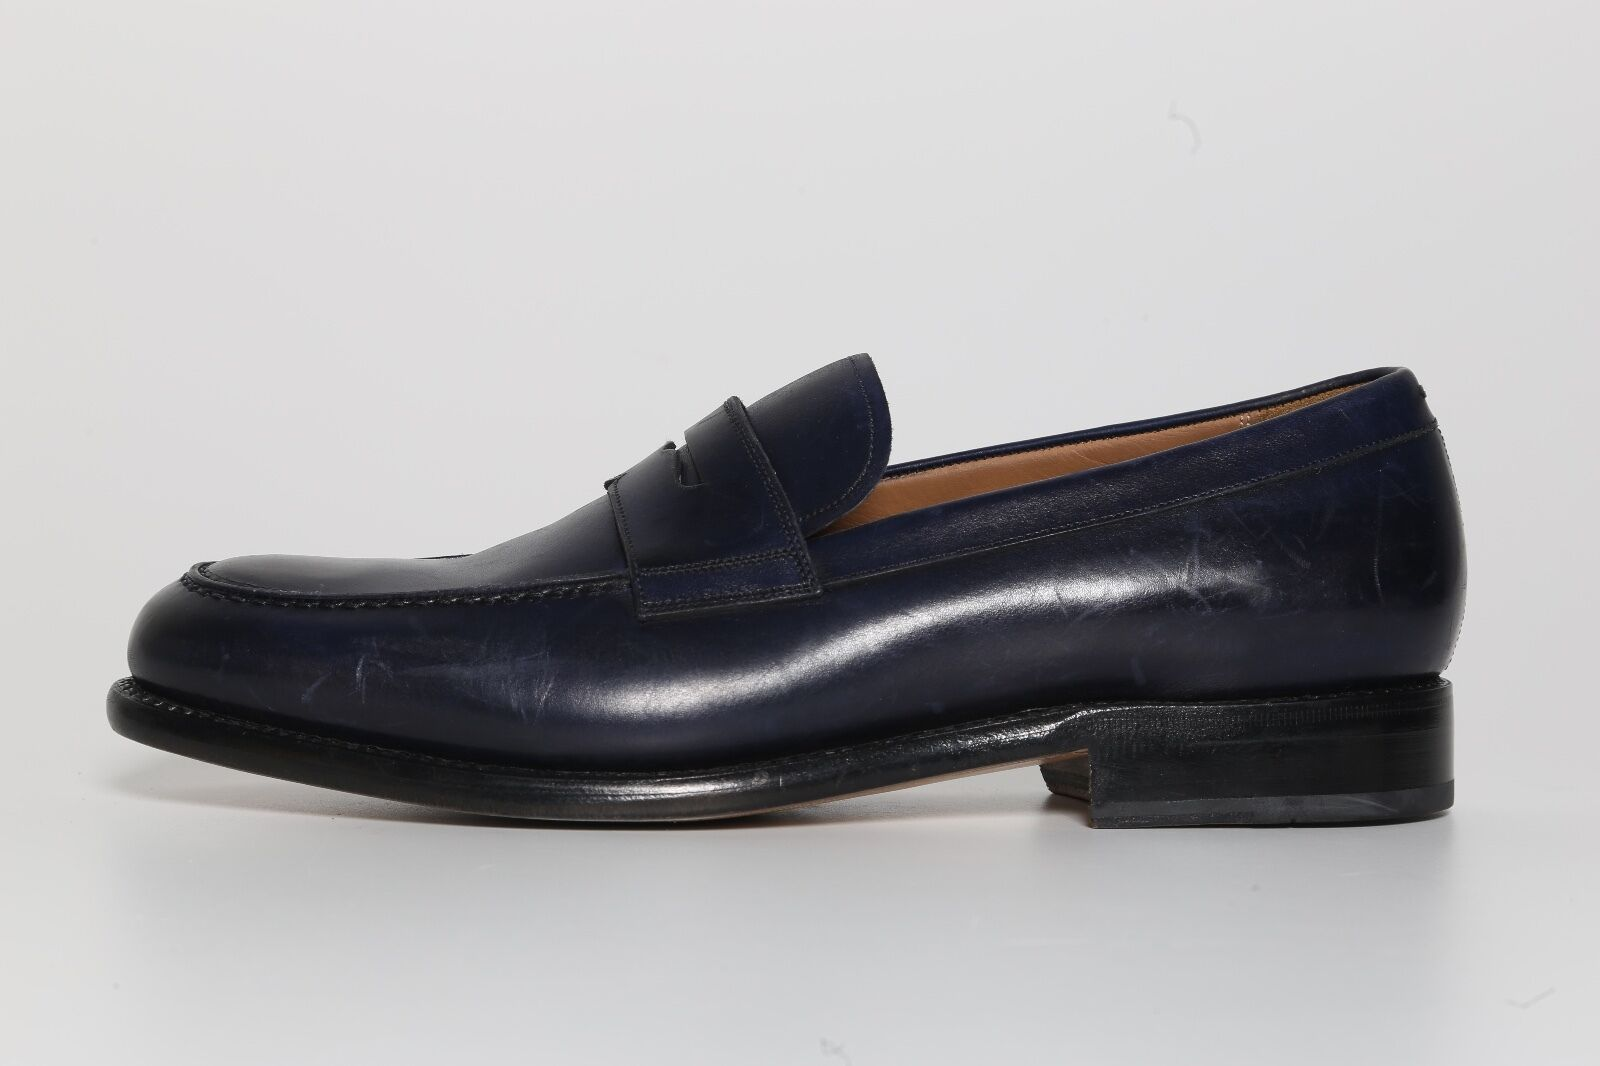 Salvatore Ferragamo Men's Navy bluee Leather Loafers 6278 Size Size Size 8.5 EEE NEW e3d7dc